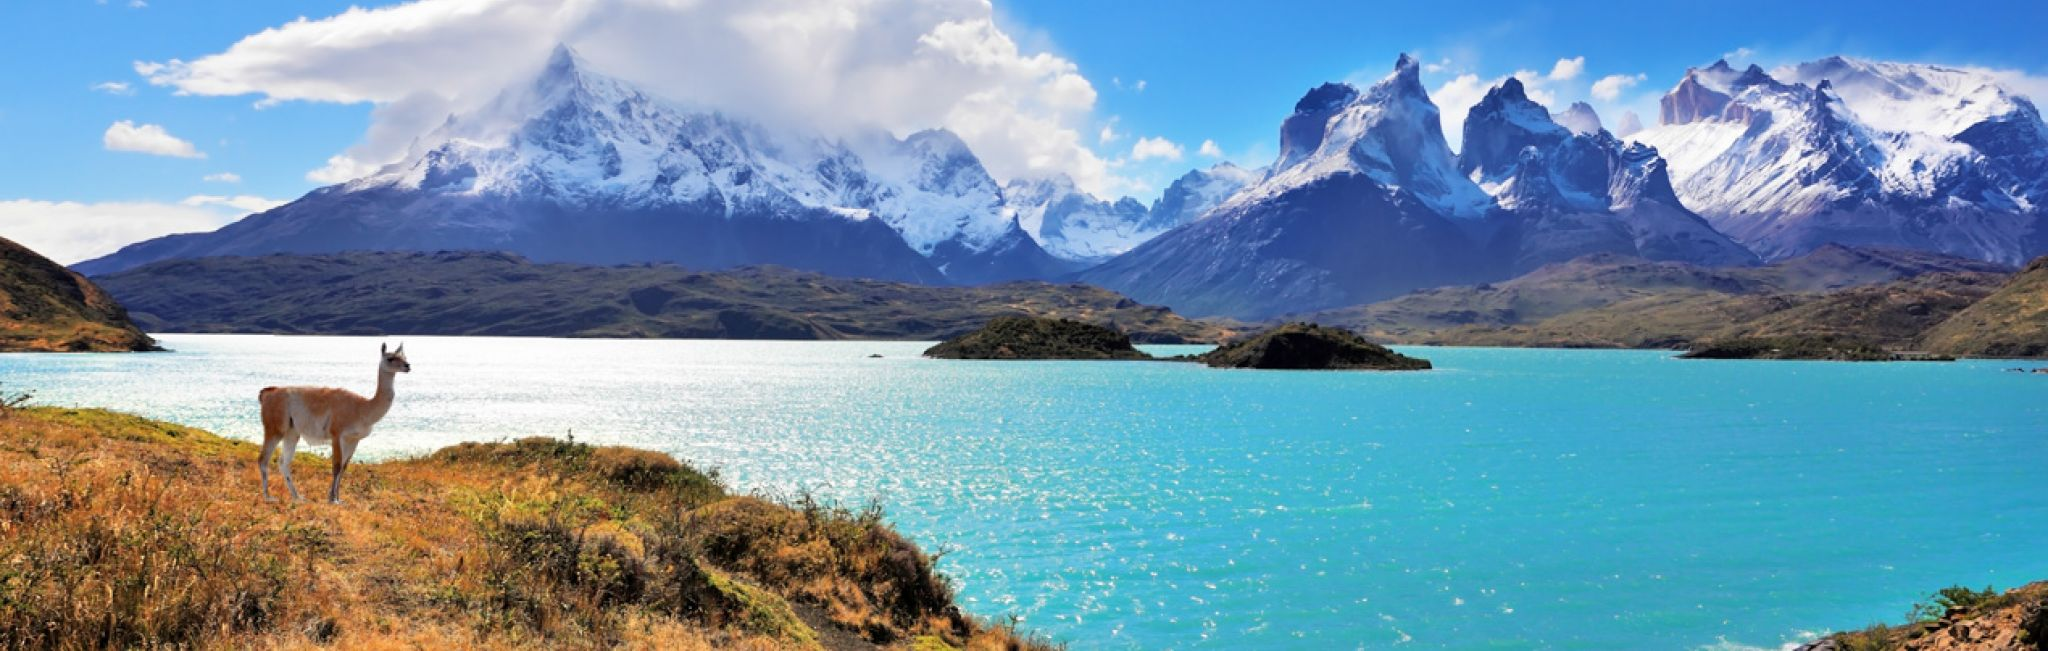 Best Chile Tours Vacations Amp Travel Packages 2015 2016